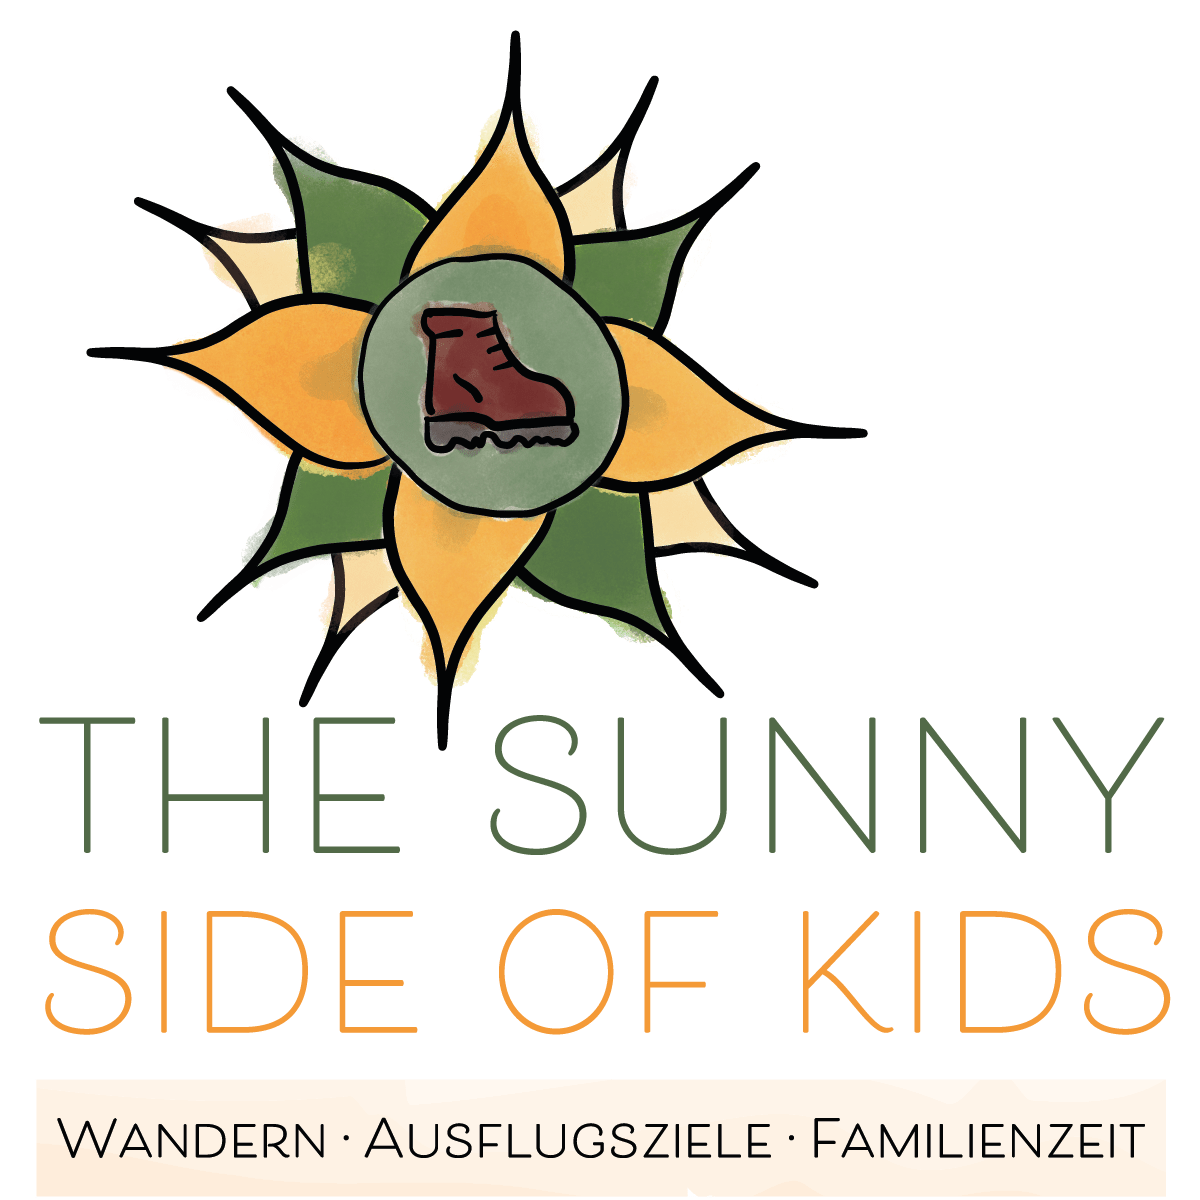 thesunnysideofkids, wandern in vorarlberg, logo, best logo hiking